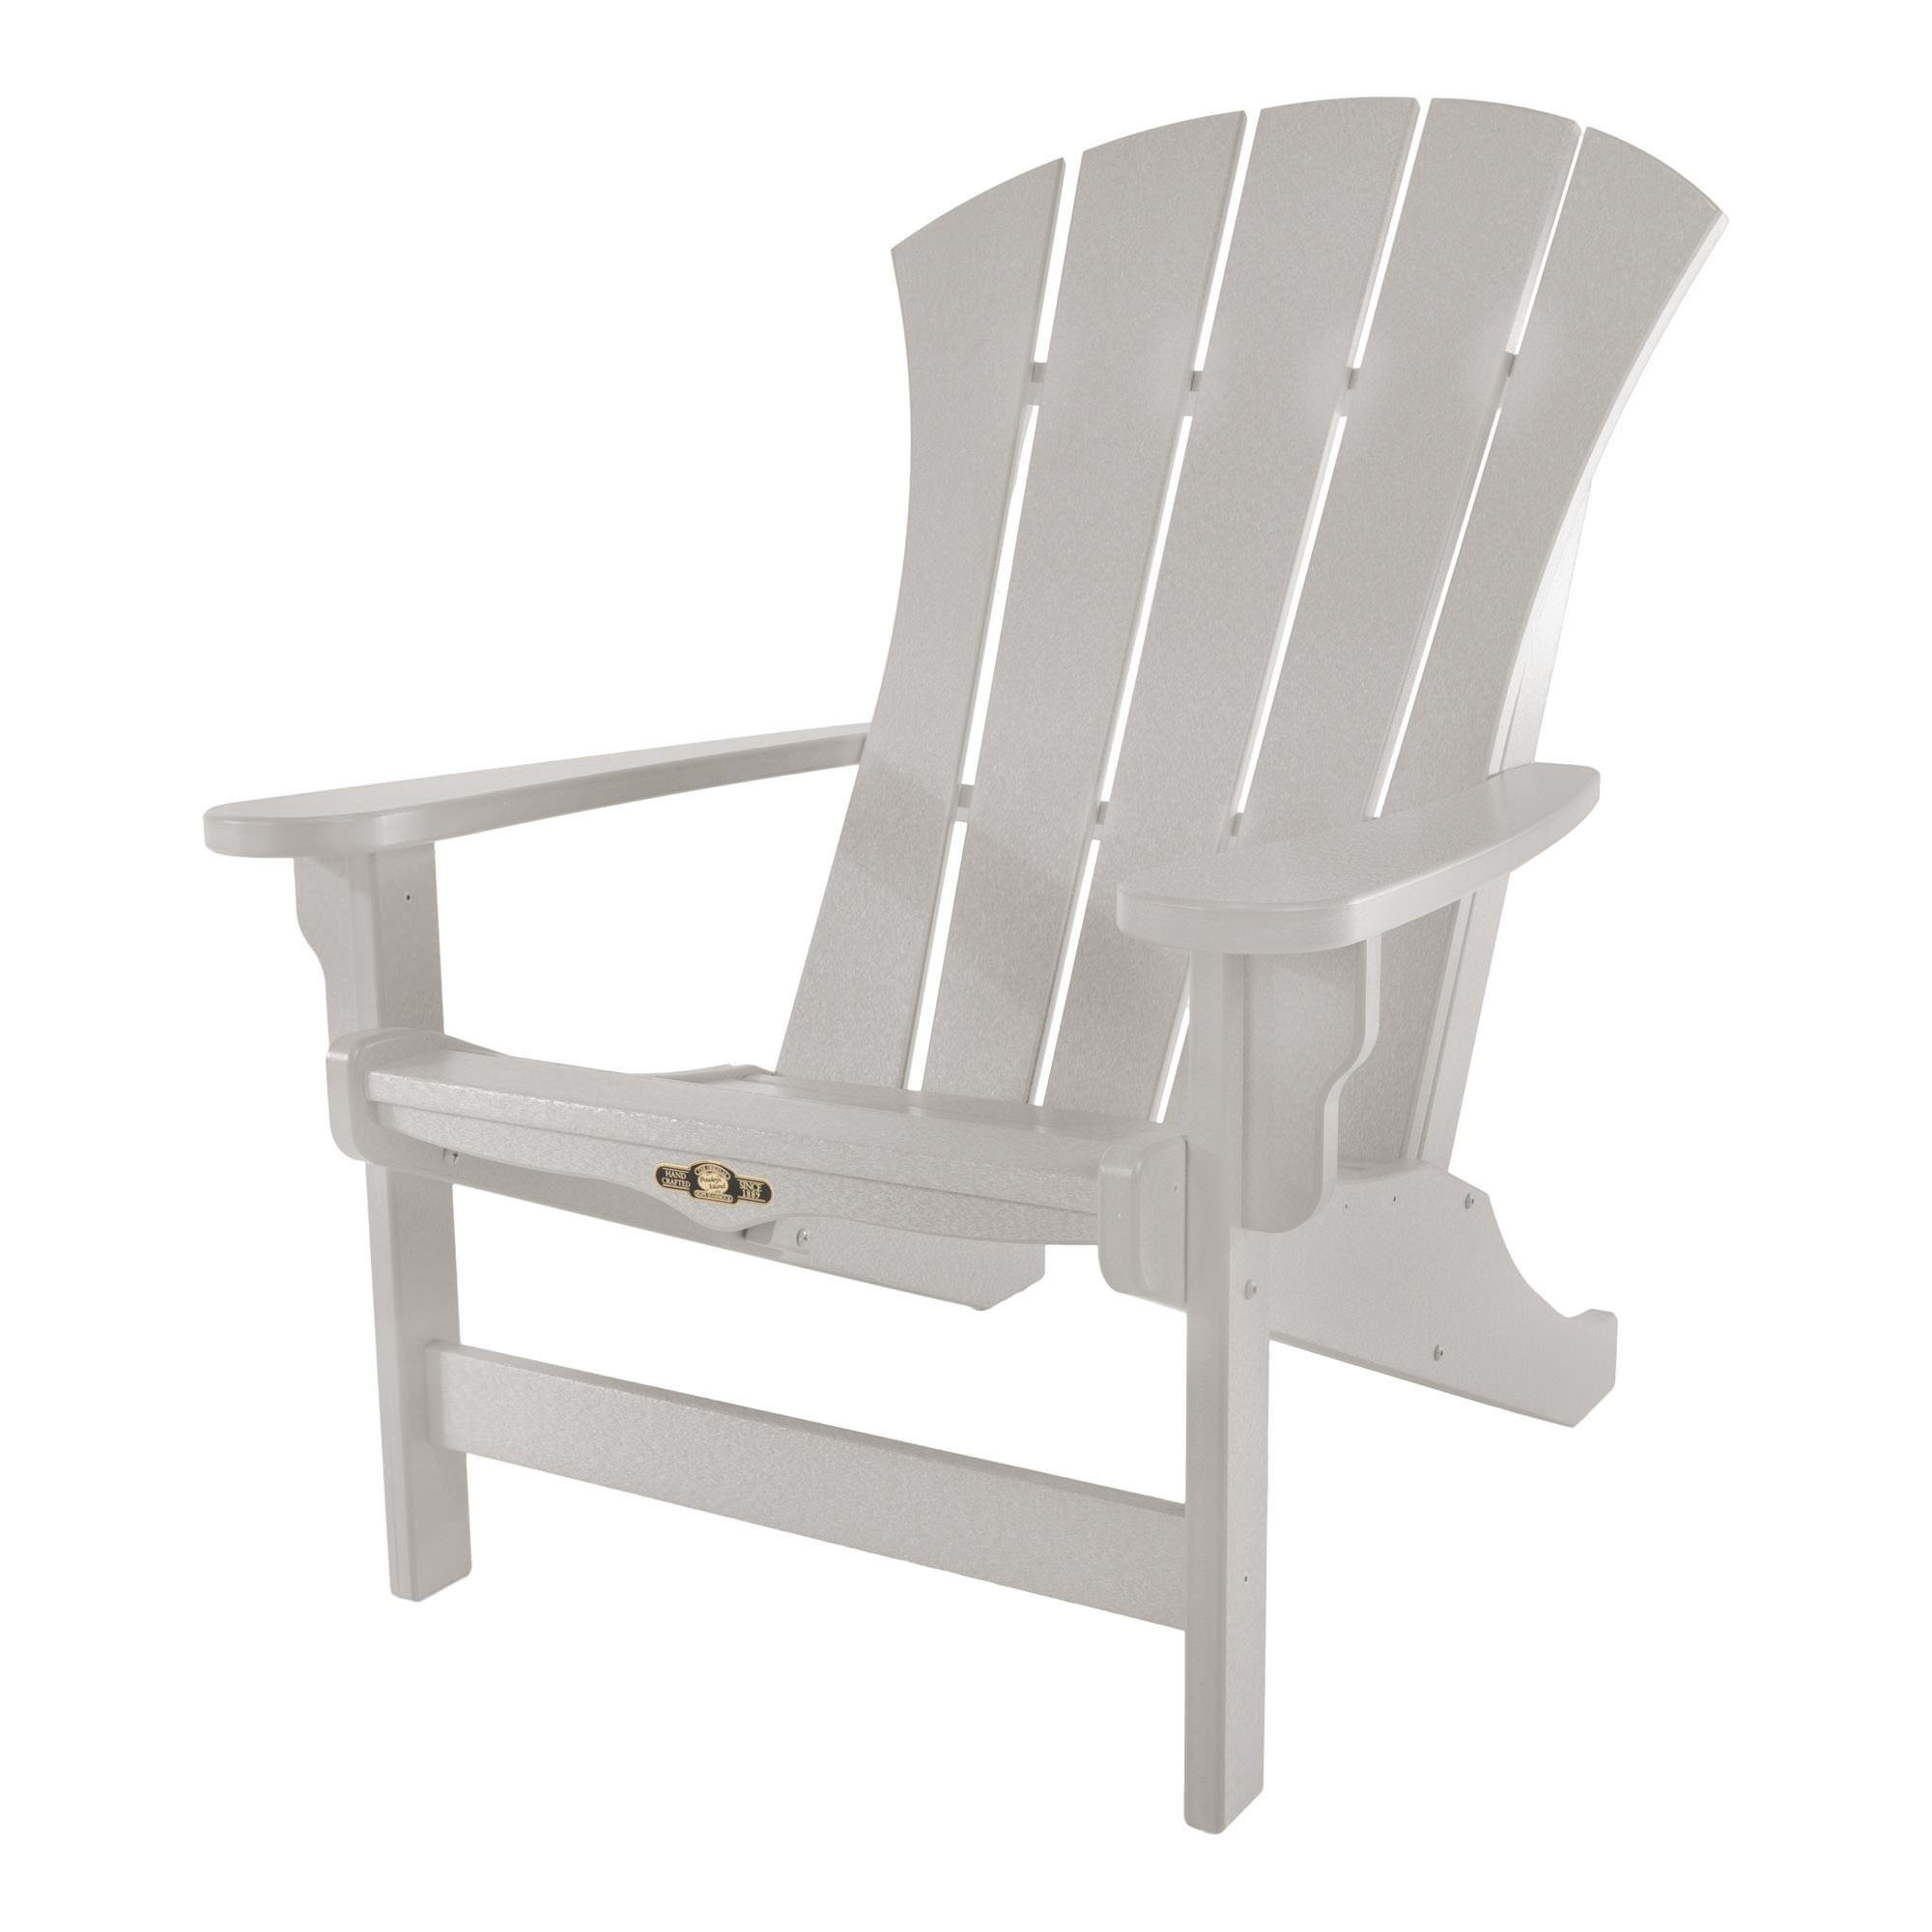 gray adirondack chairs chair stool ikea sunrise pawleys island furniture sku srac1 k